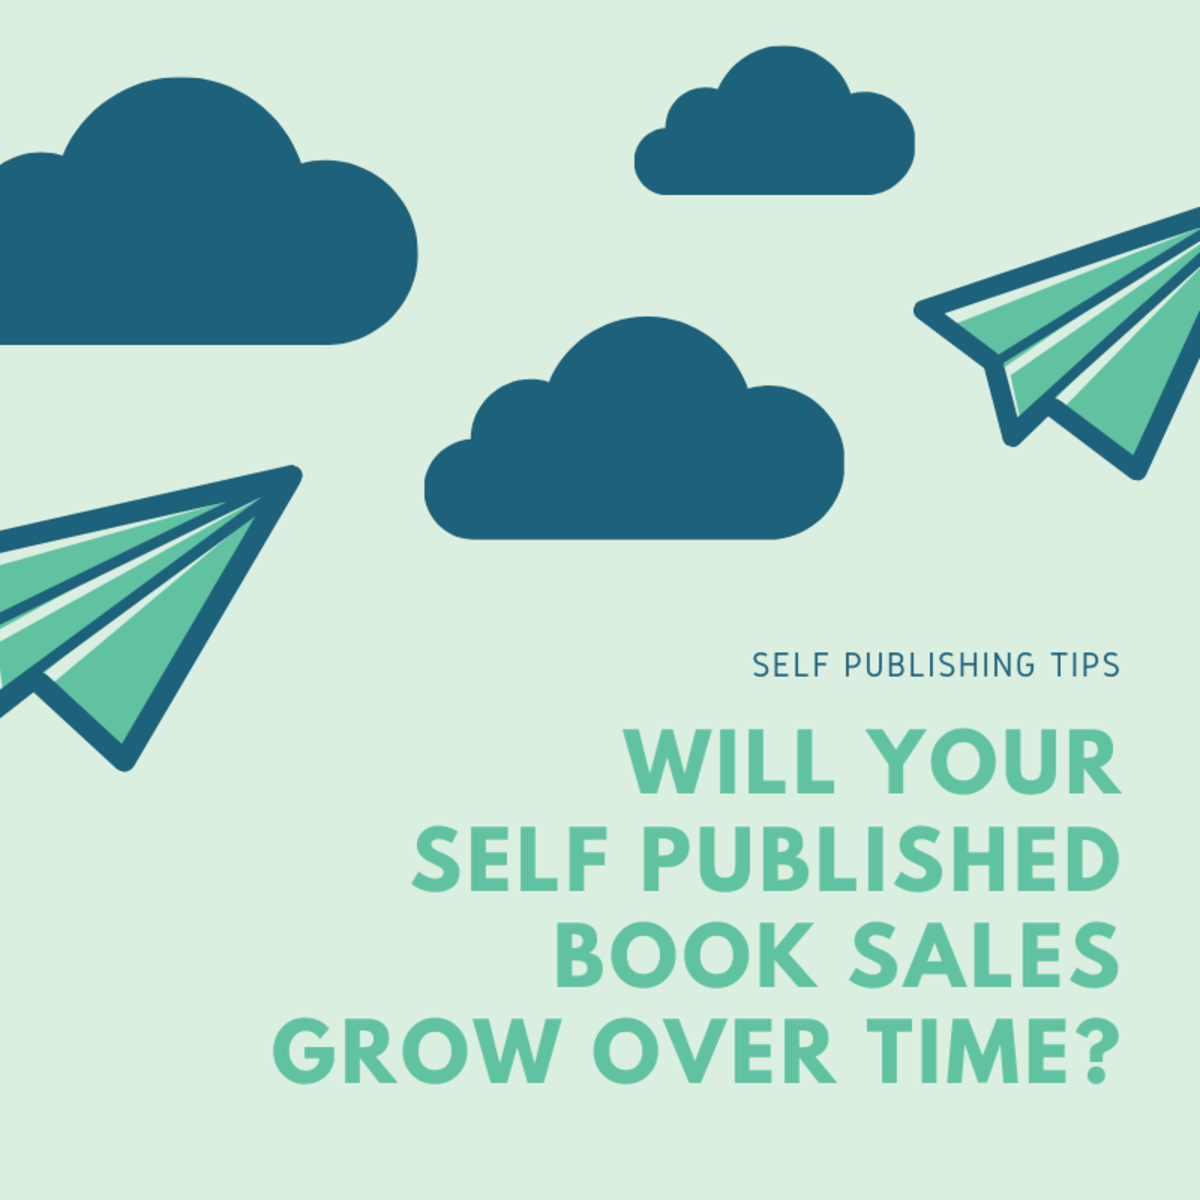 Will Your Self Published Book Sales Grow Over Time?